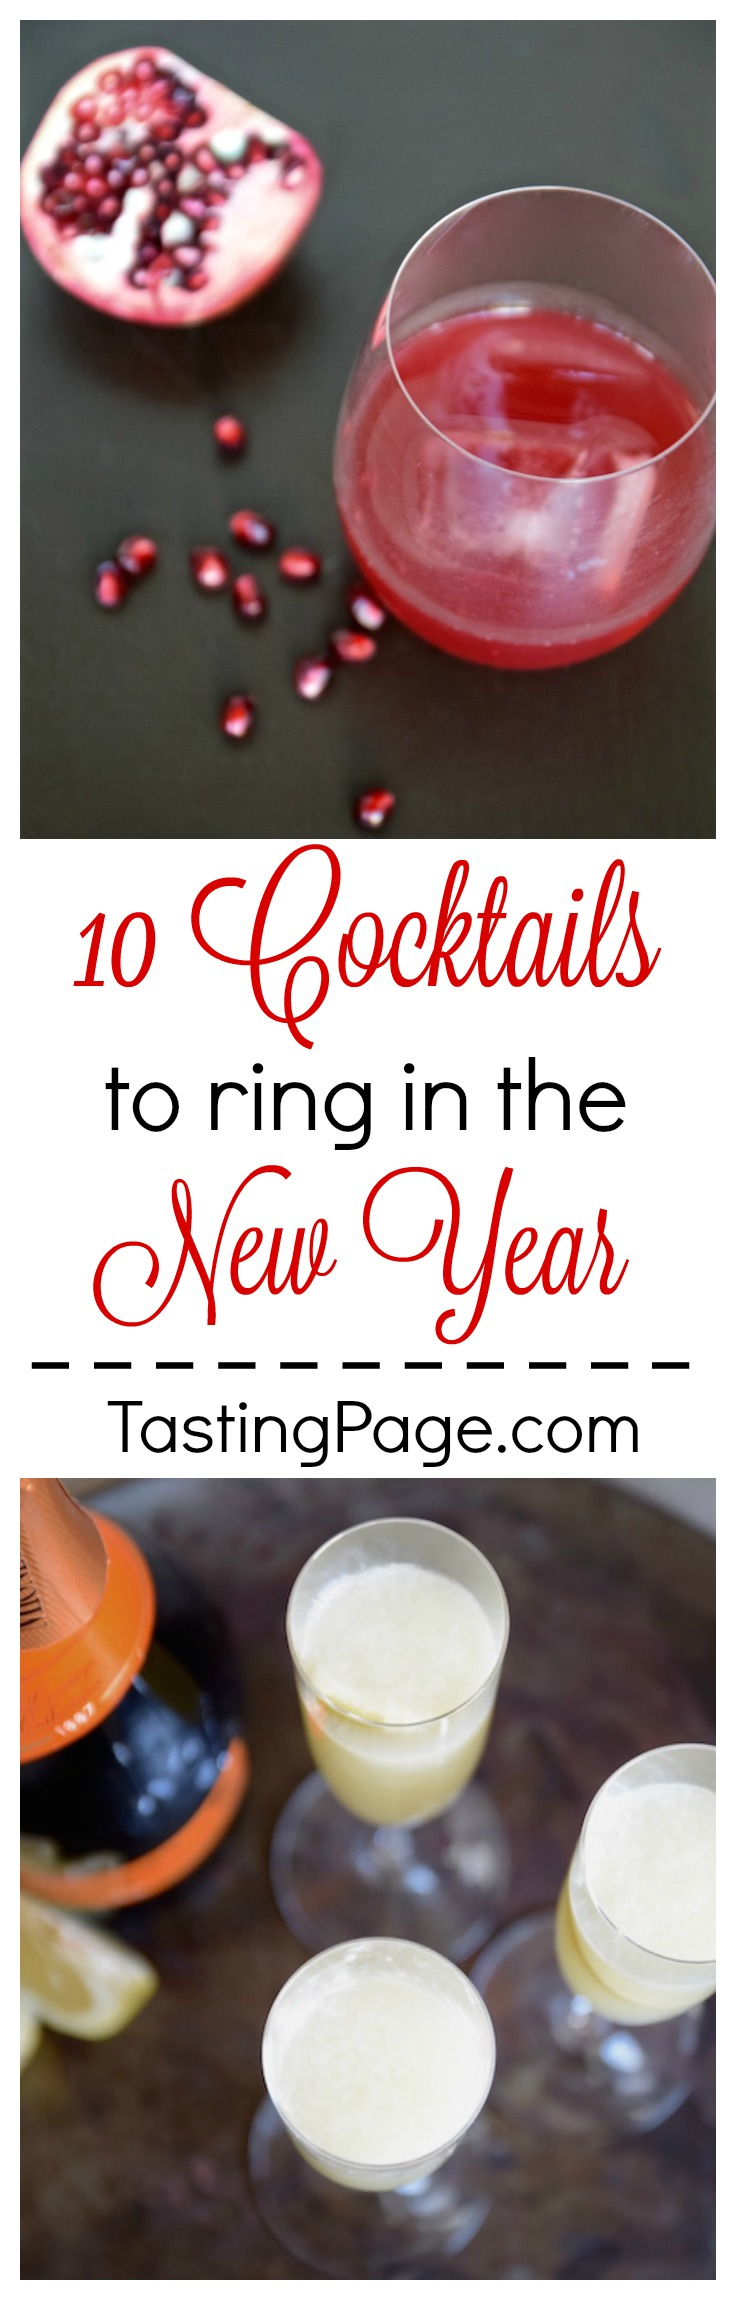 New Year's Cocktails - 10 cocktails to ring in the new year | TastingPage.com